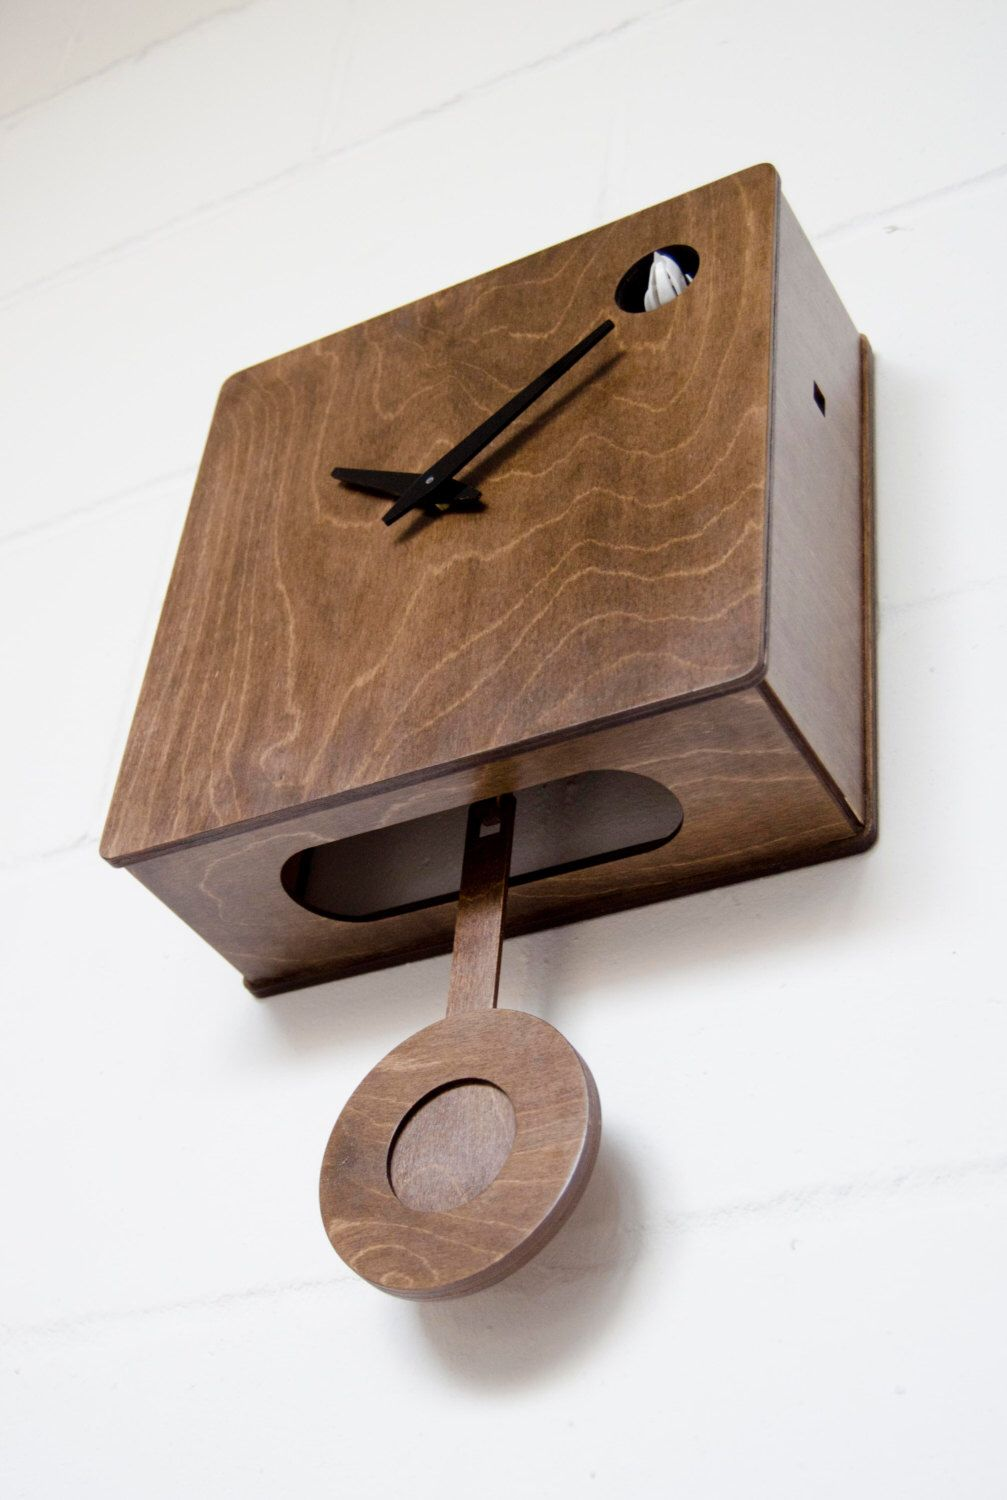 quercus modern cuckoo clock in walnut finish clock walnut contemporary cuckoo clocks out more info at wallsloveart co uk